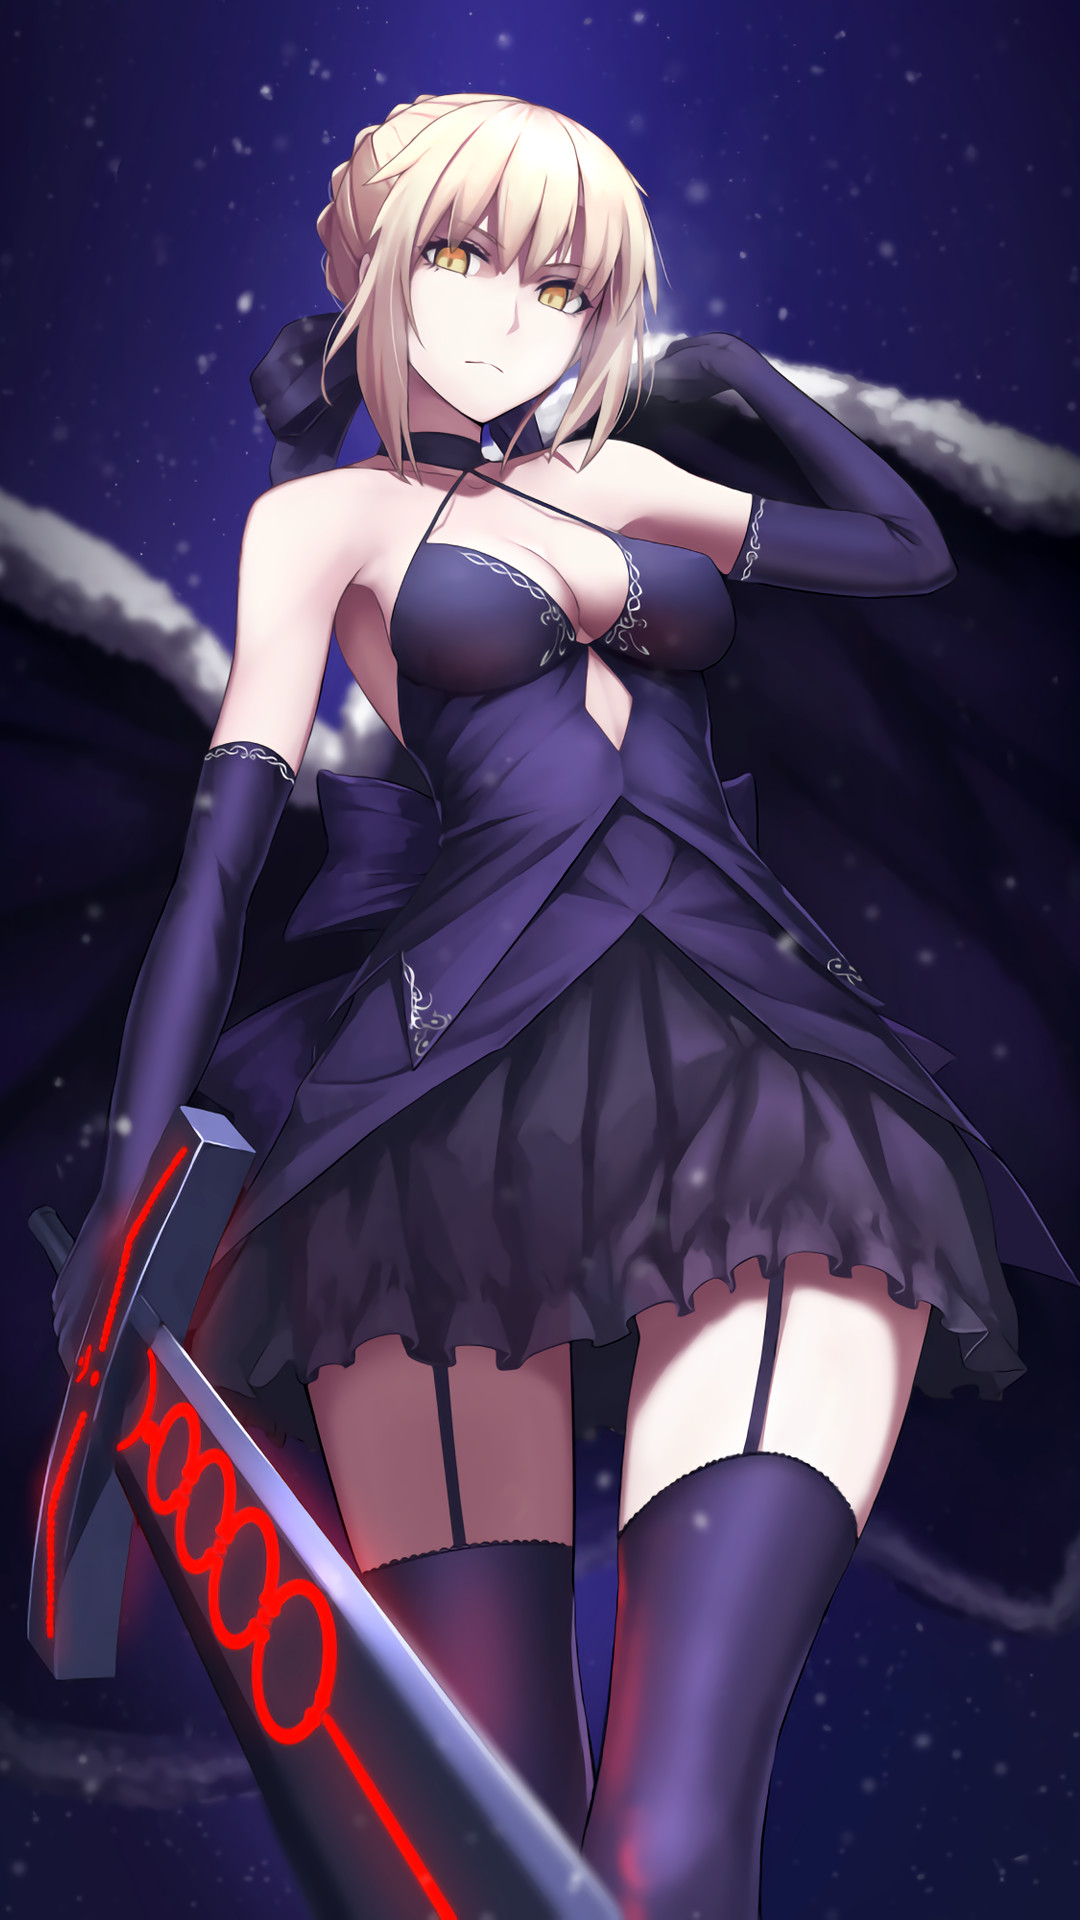 Saber (Fate/grand order) [1920×1080 & 1080×1920] Need #iPhone #